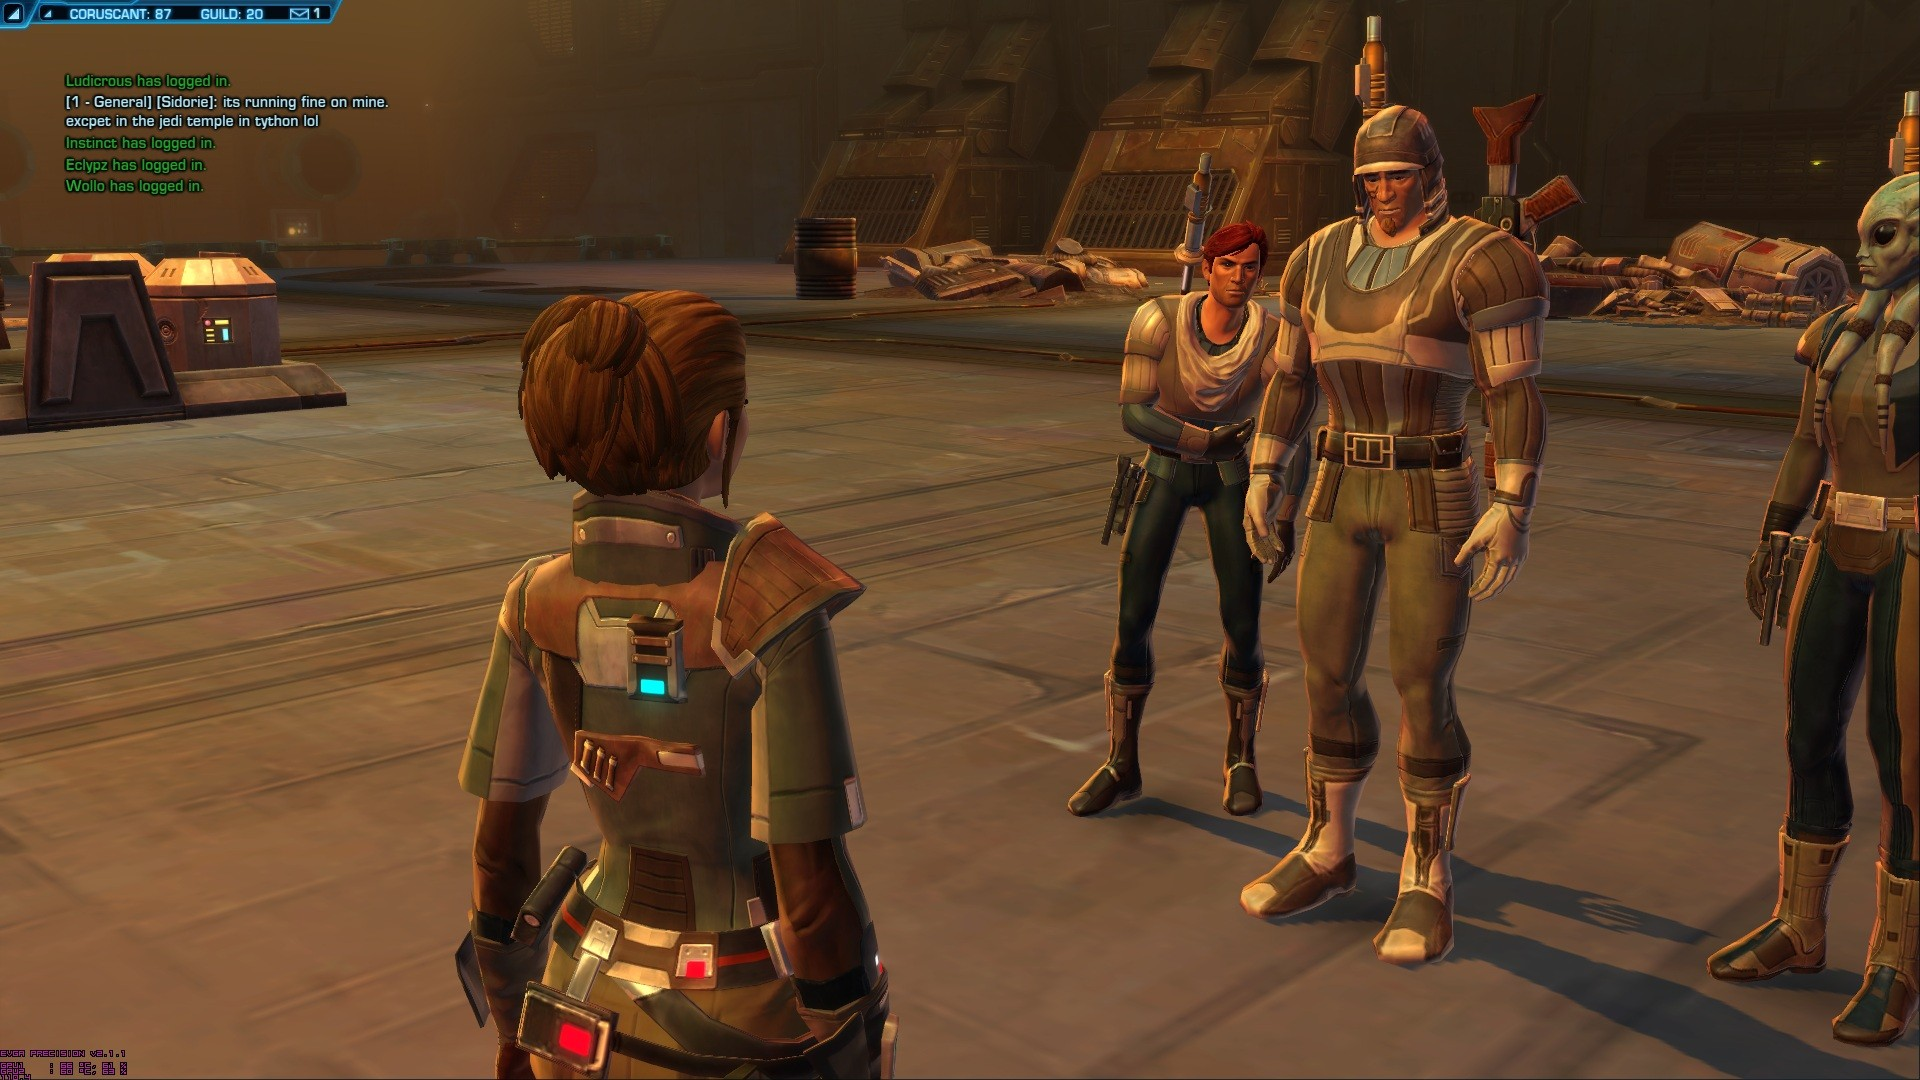 Star Wars: The Old Republic - Gtx 580sc SLI Max Settings (8x Antialiasing through the ini file)